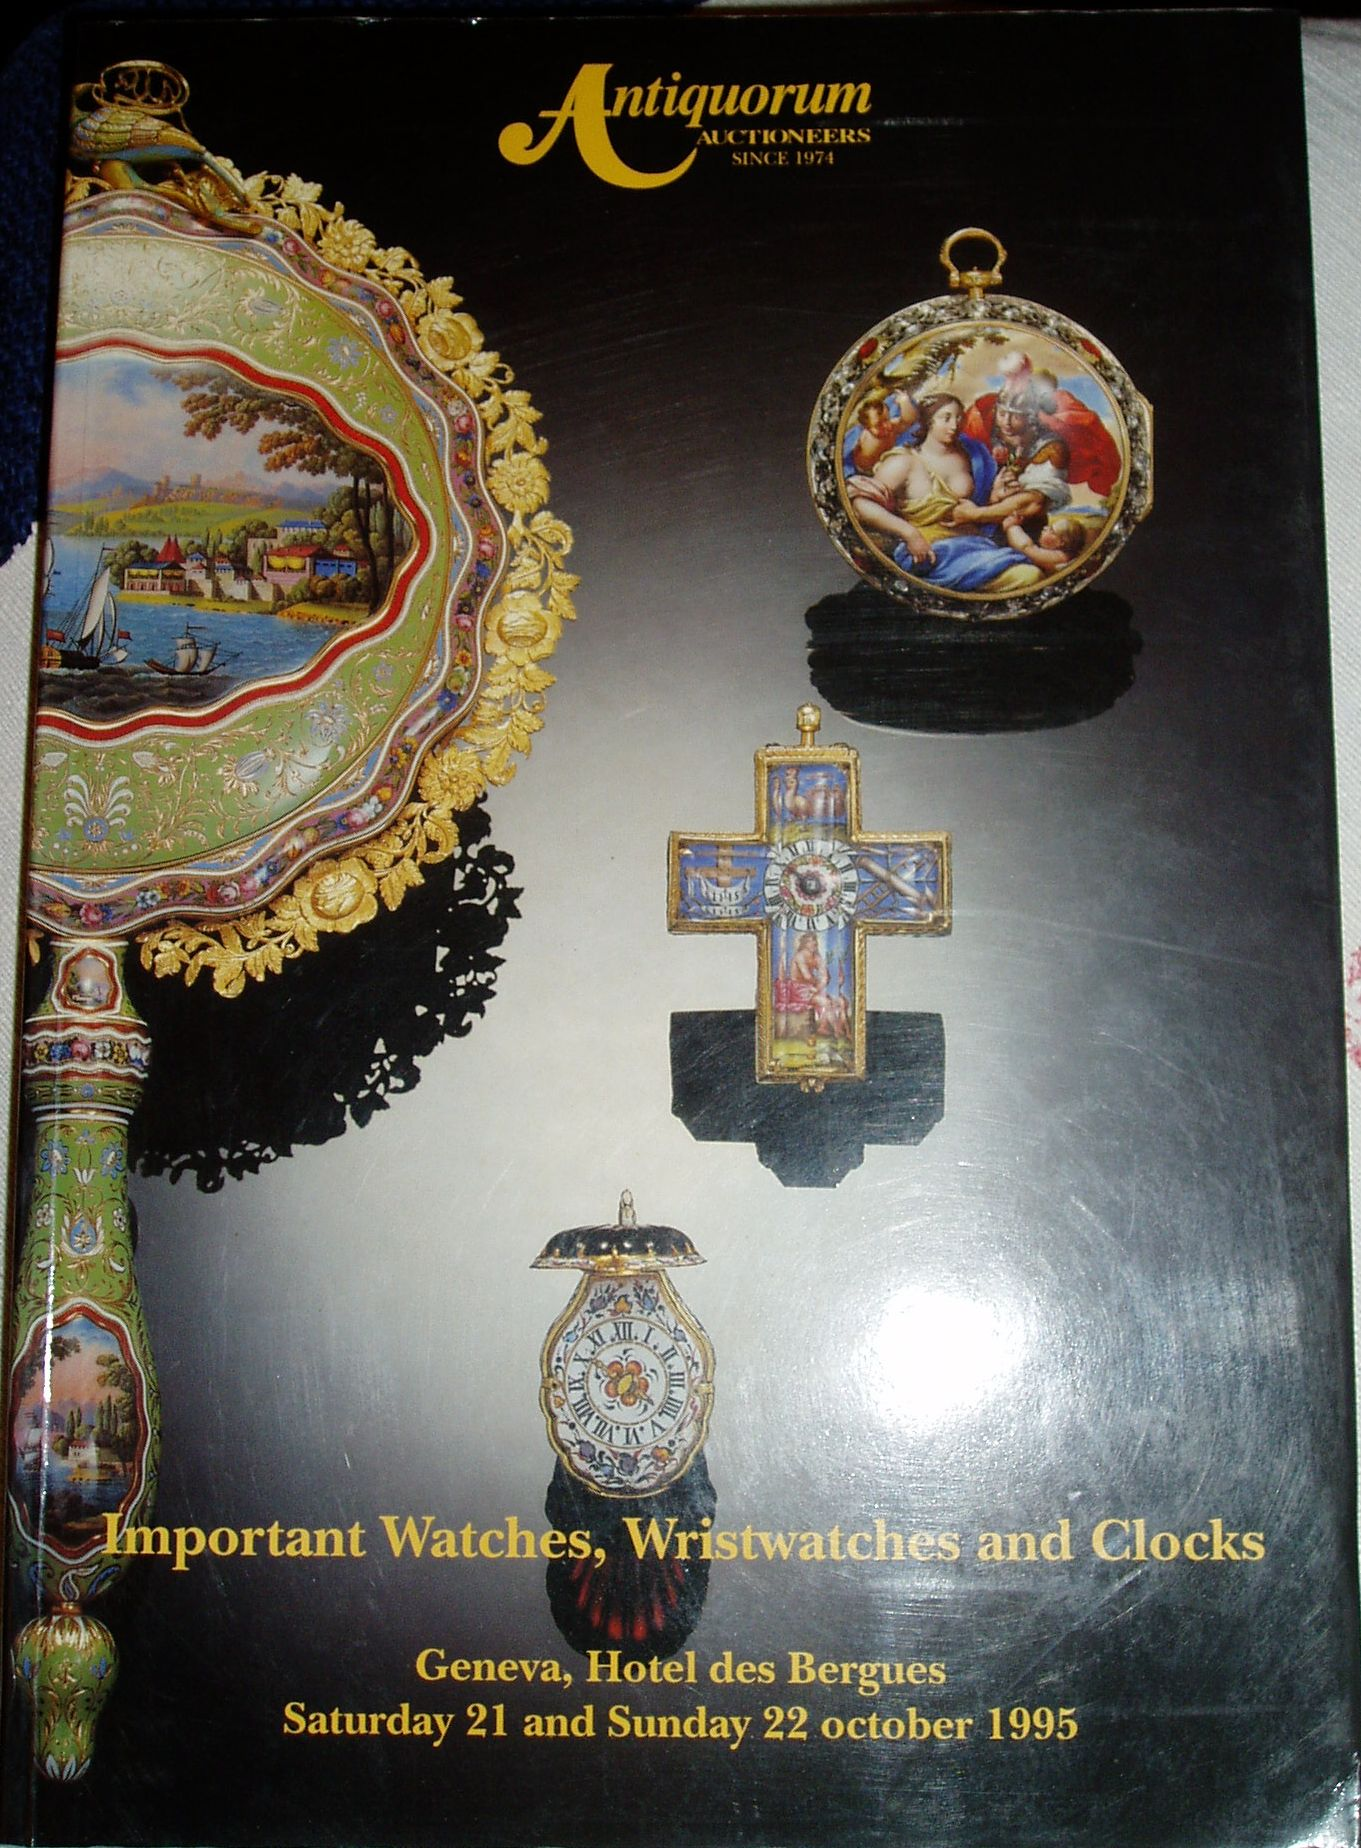 Important Wathches, Wristwatches and Clocks